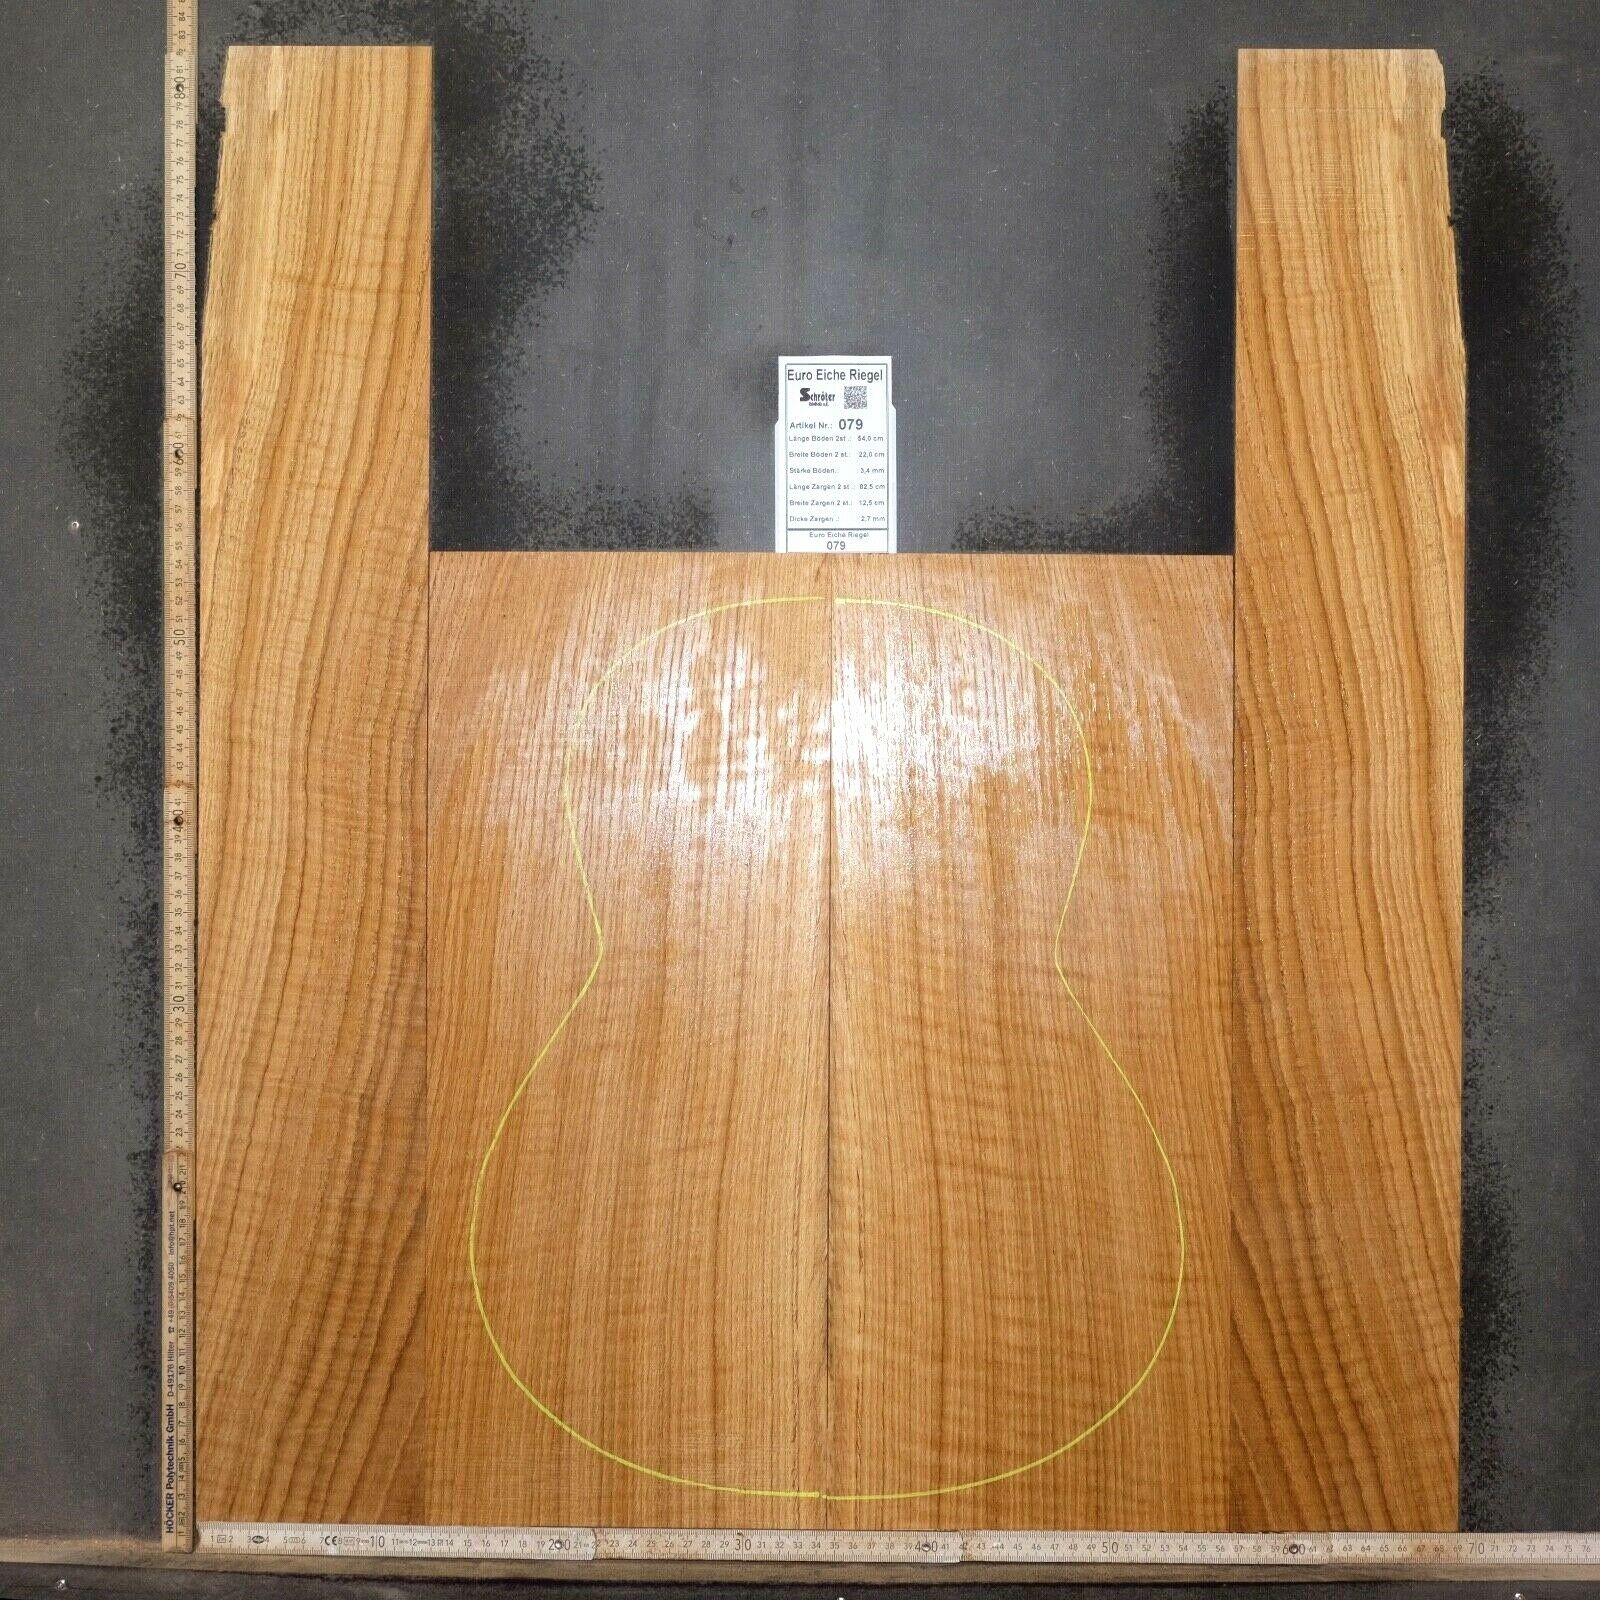 Tonewood Curly Quercia Oak Guitar Luthier Tonholz Acoustic backs and side Set 79